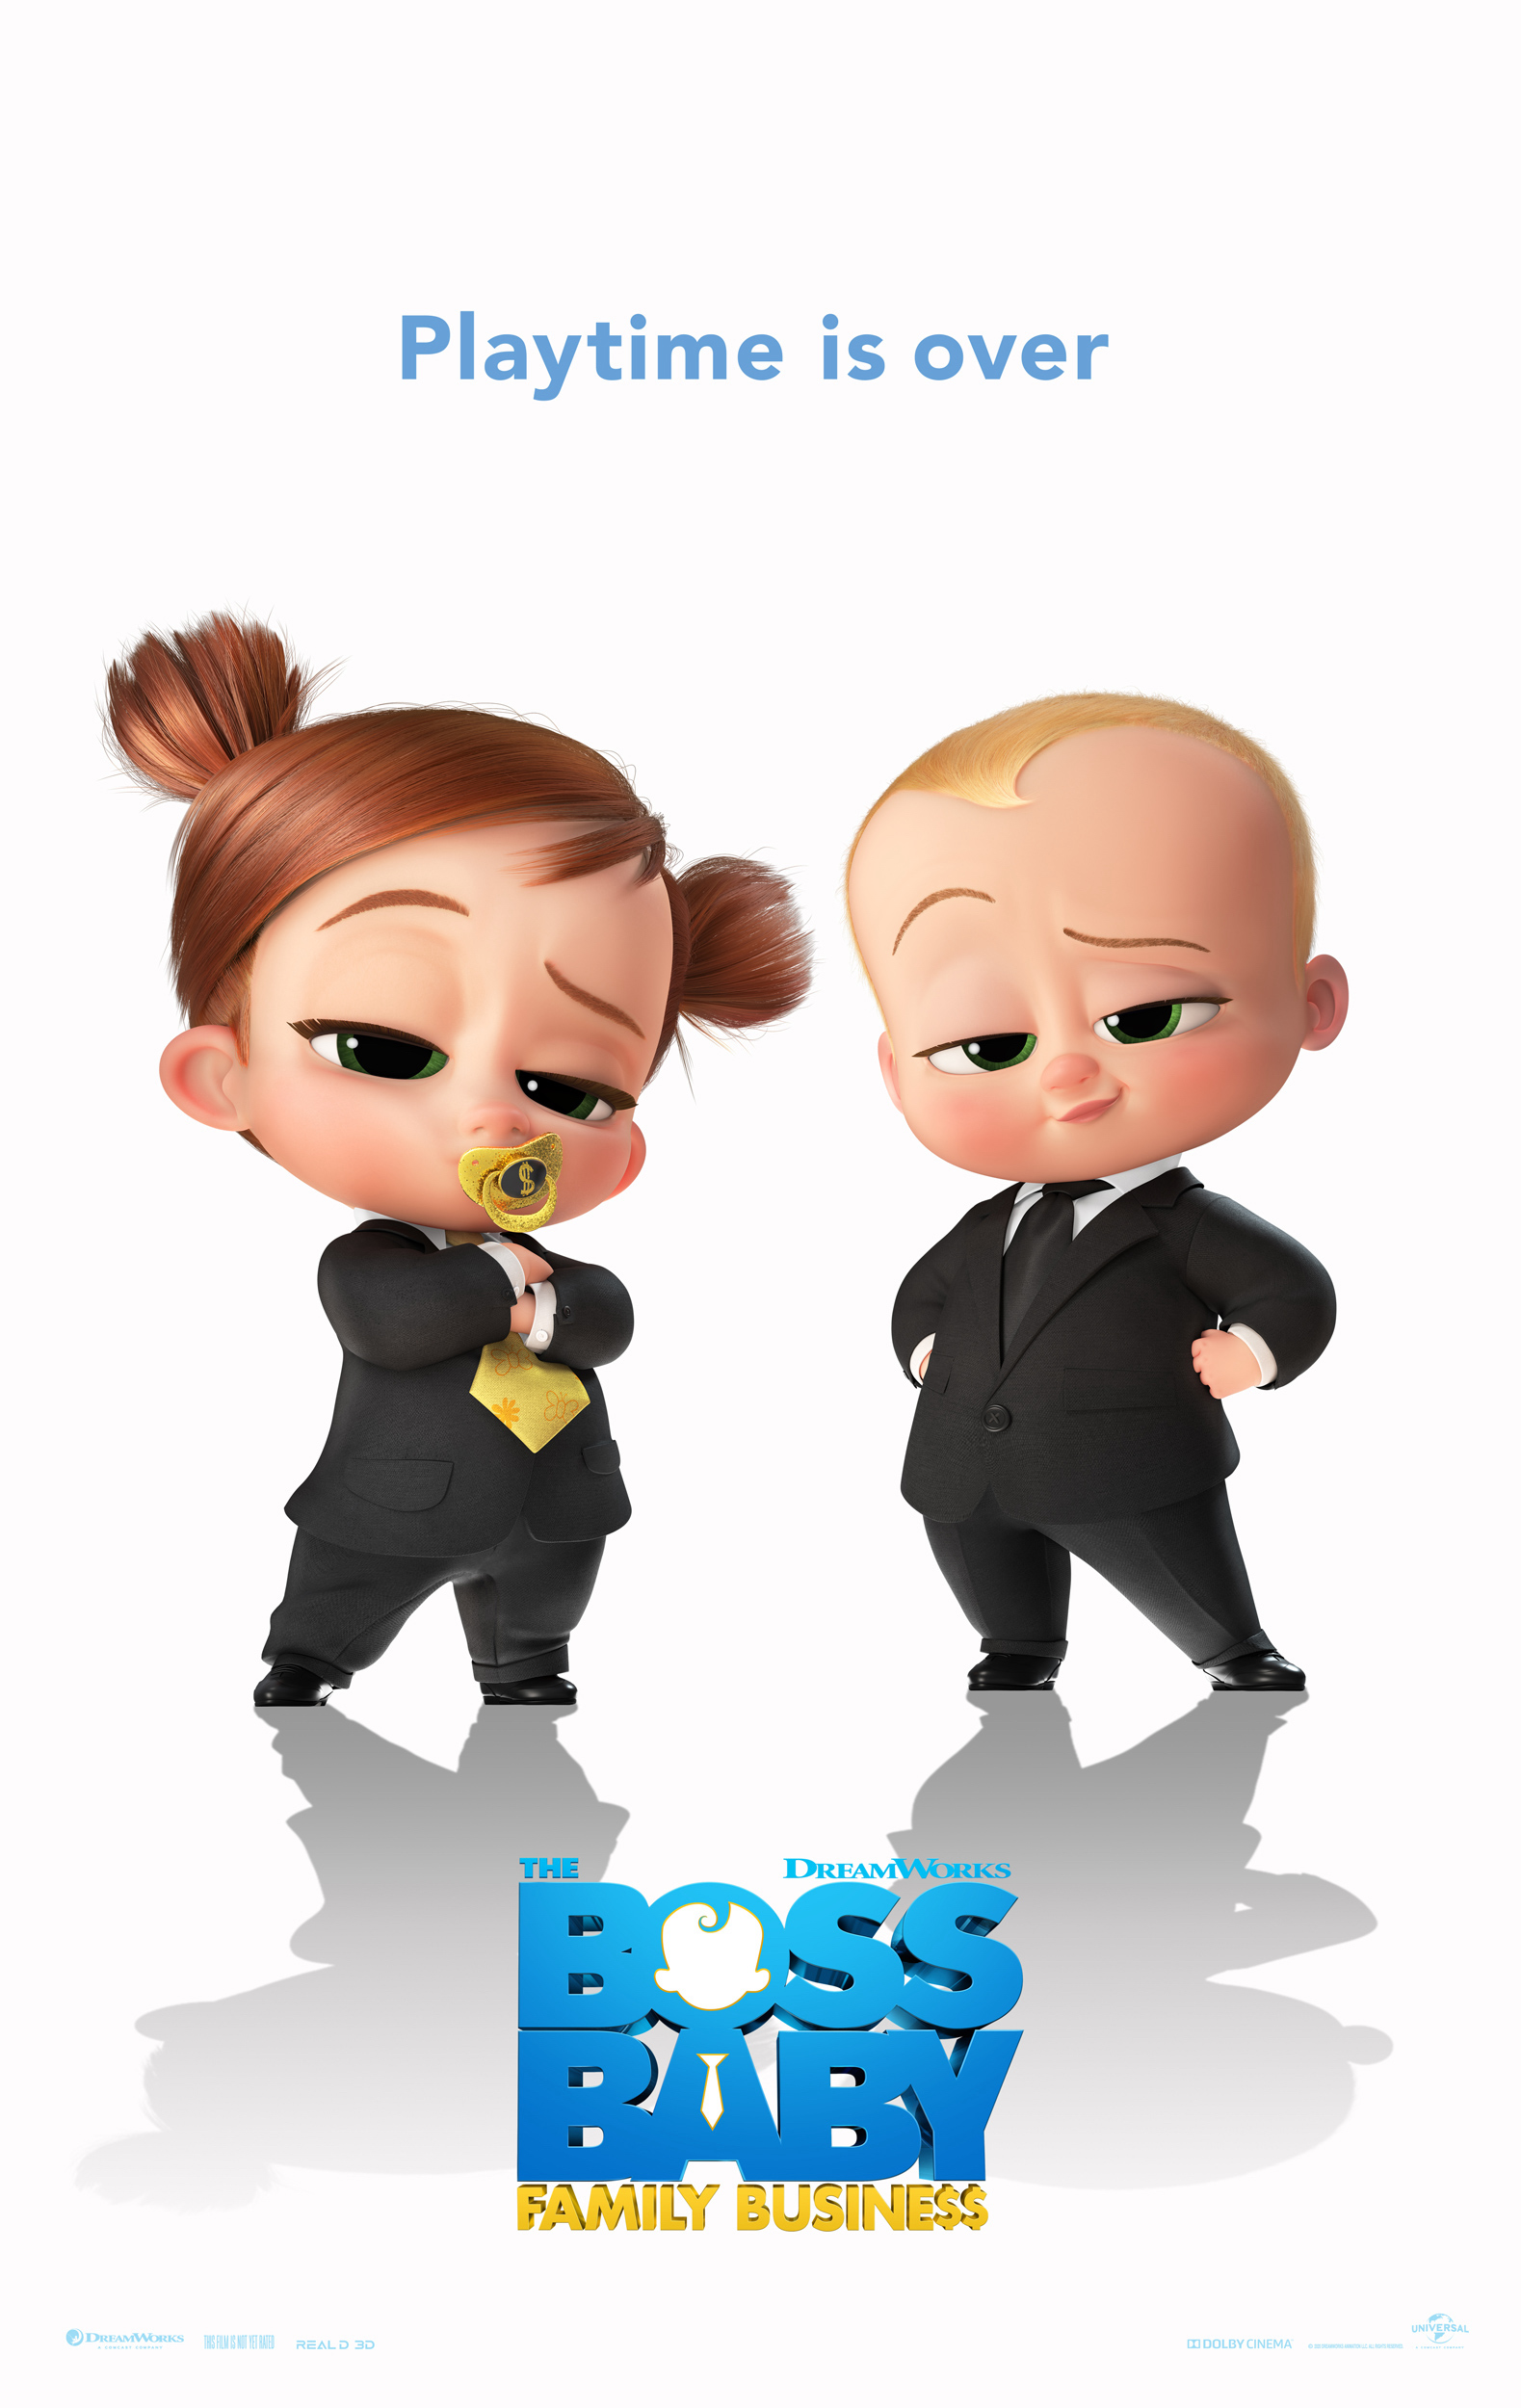 Image of a baby girl and boy in suits